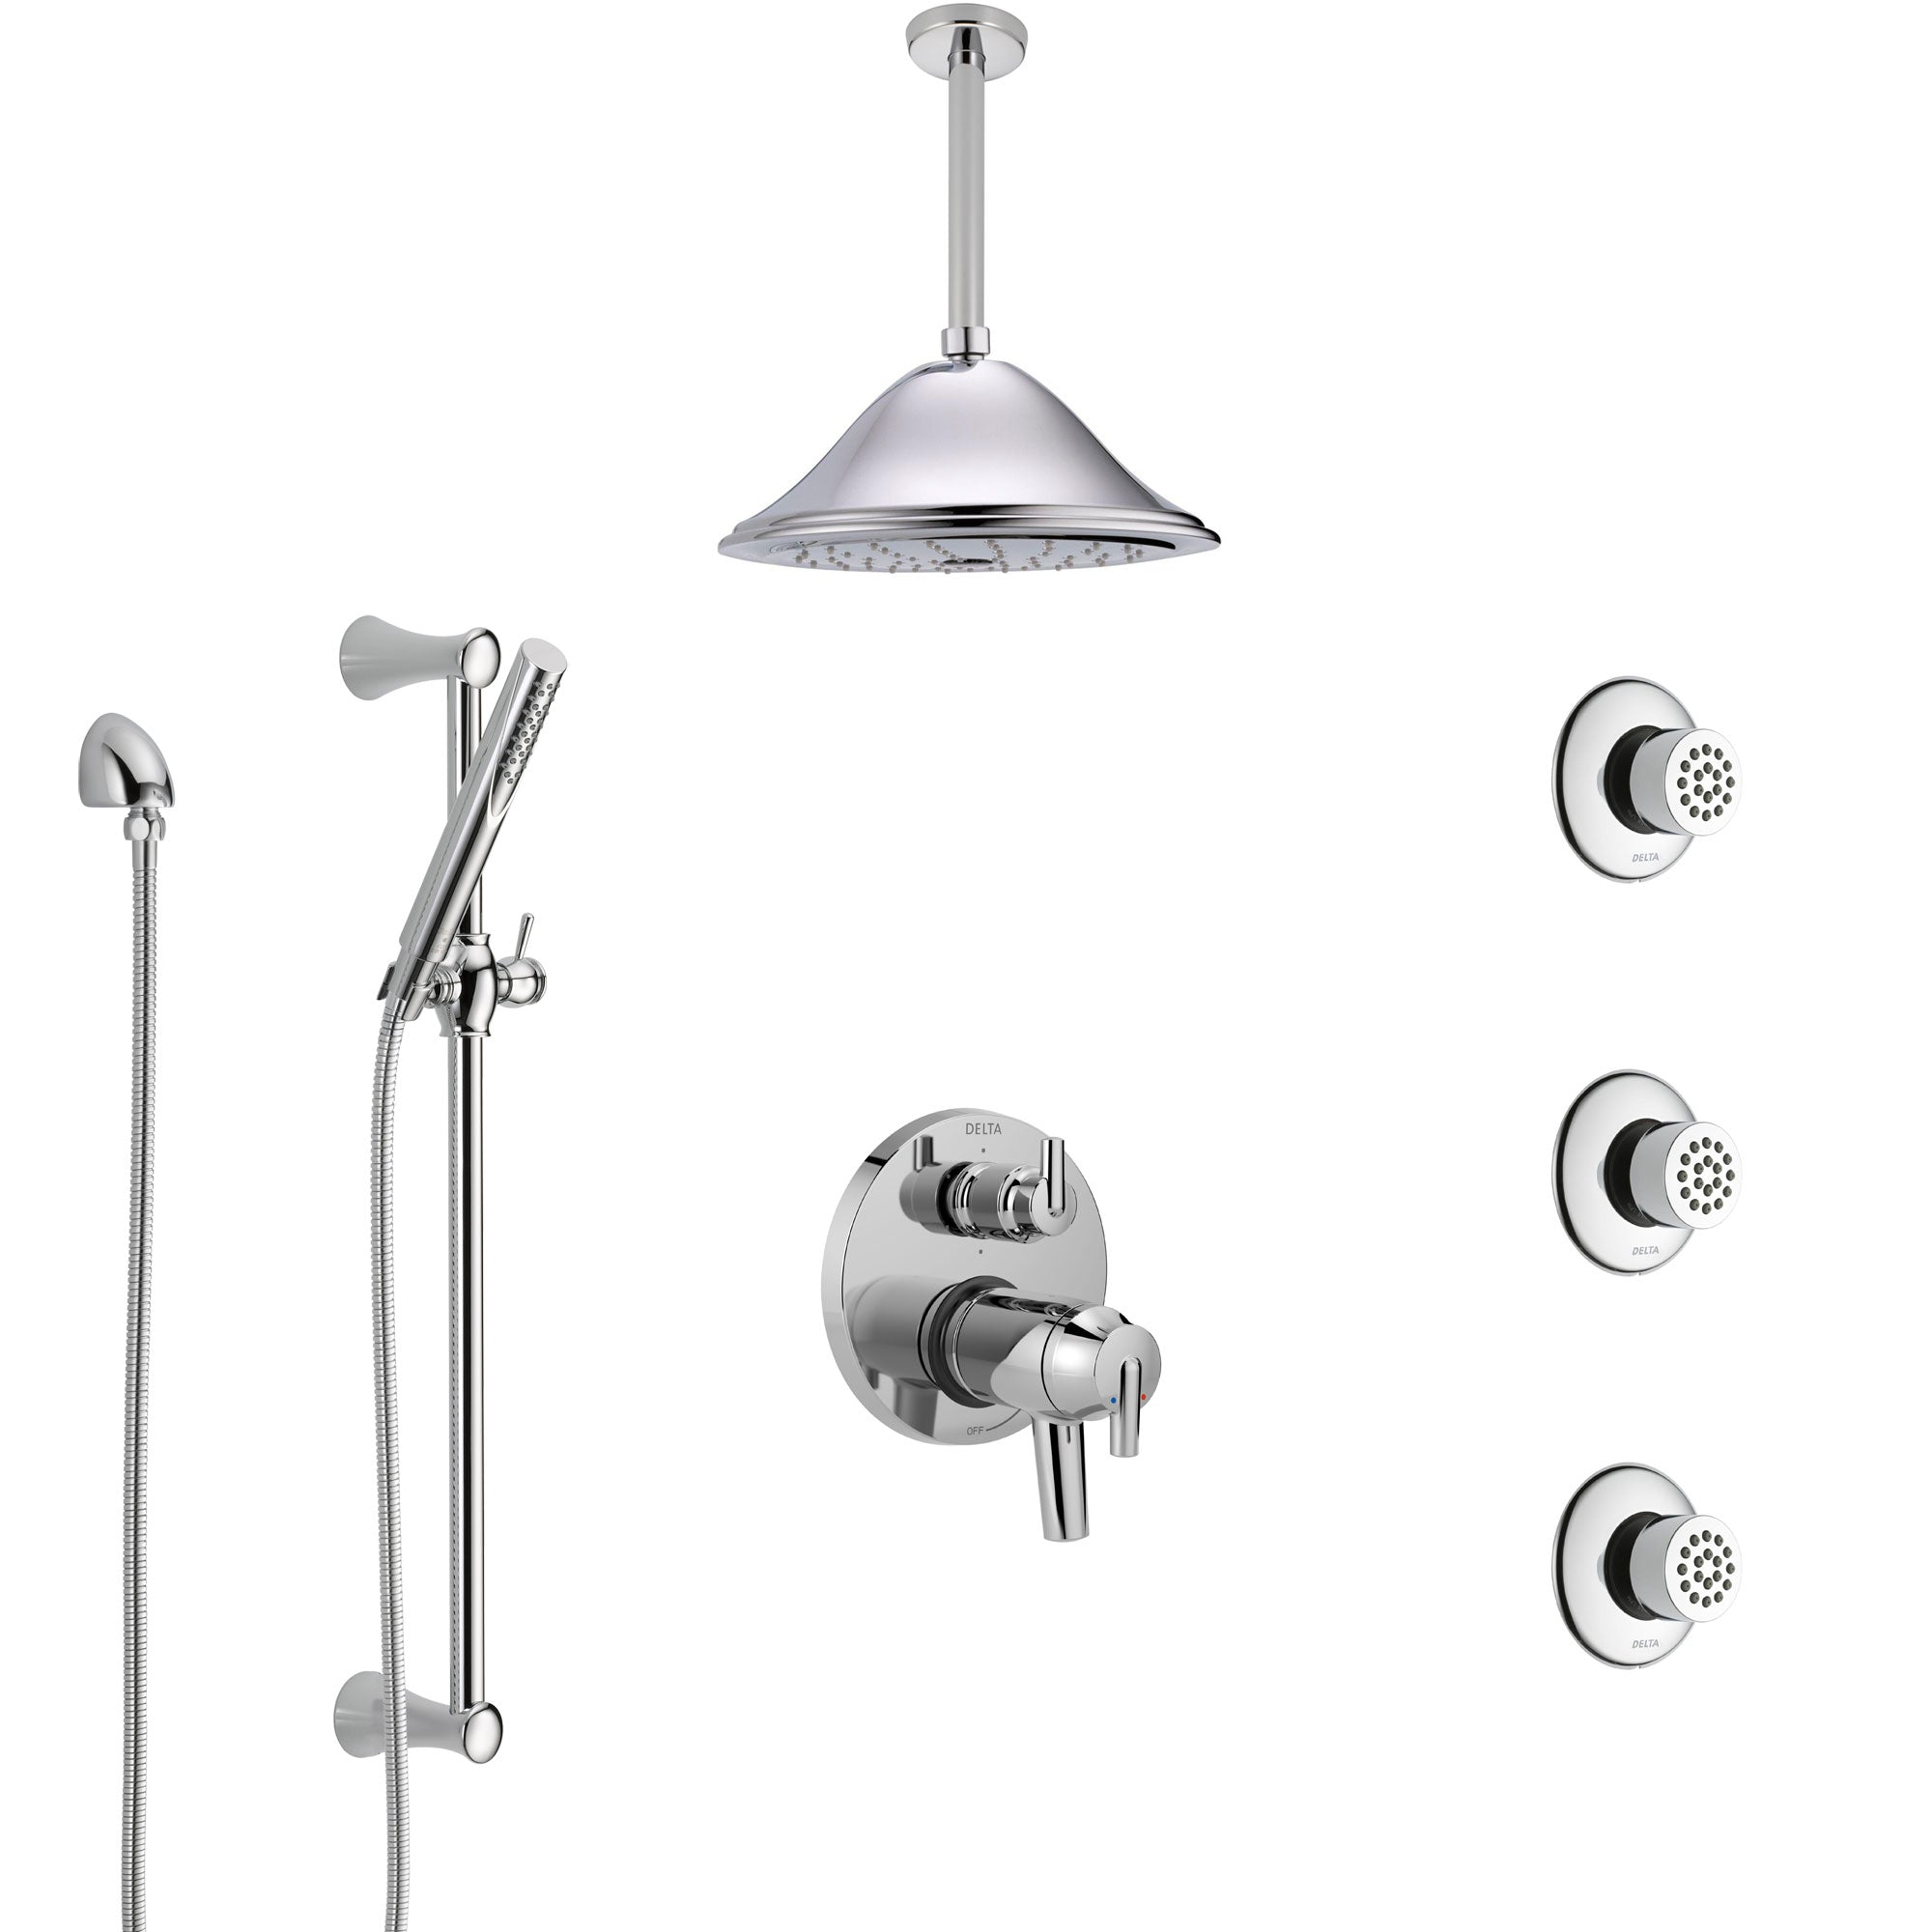 Delta Trinsic Chrome Shower System with Dual Thermostatic Control, Integrated Diverter, Ceiling Showerhead, 3 Body Sprays, and Hand Shower SS27T9596